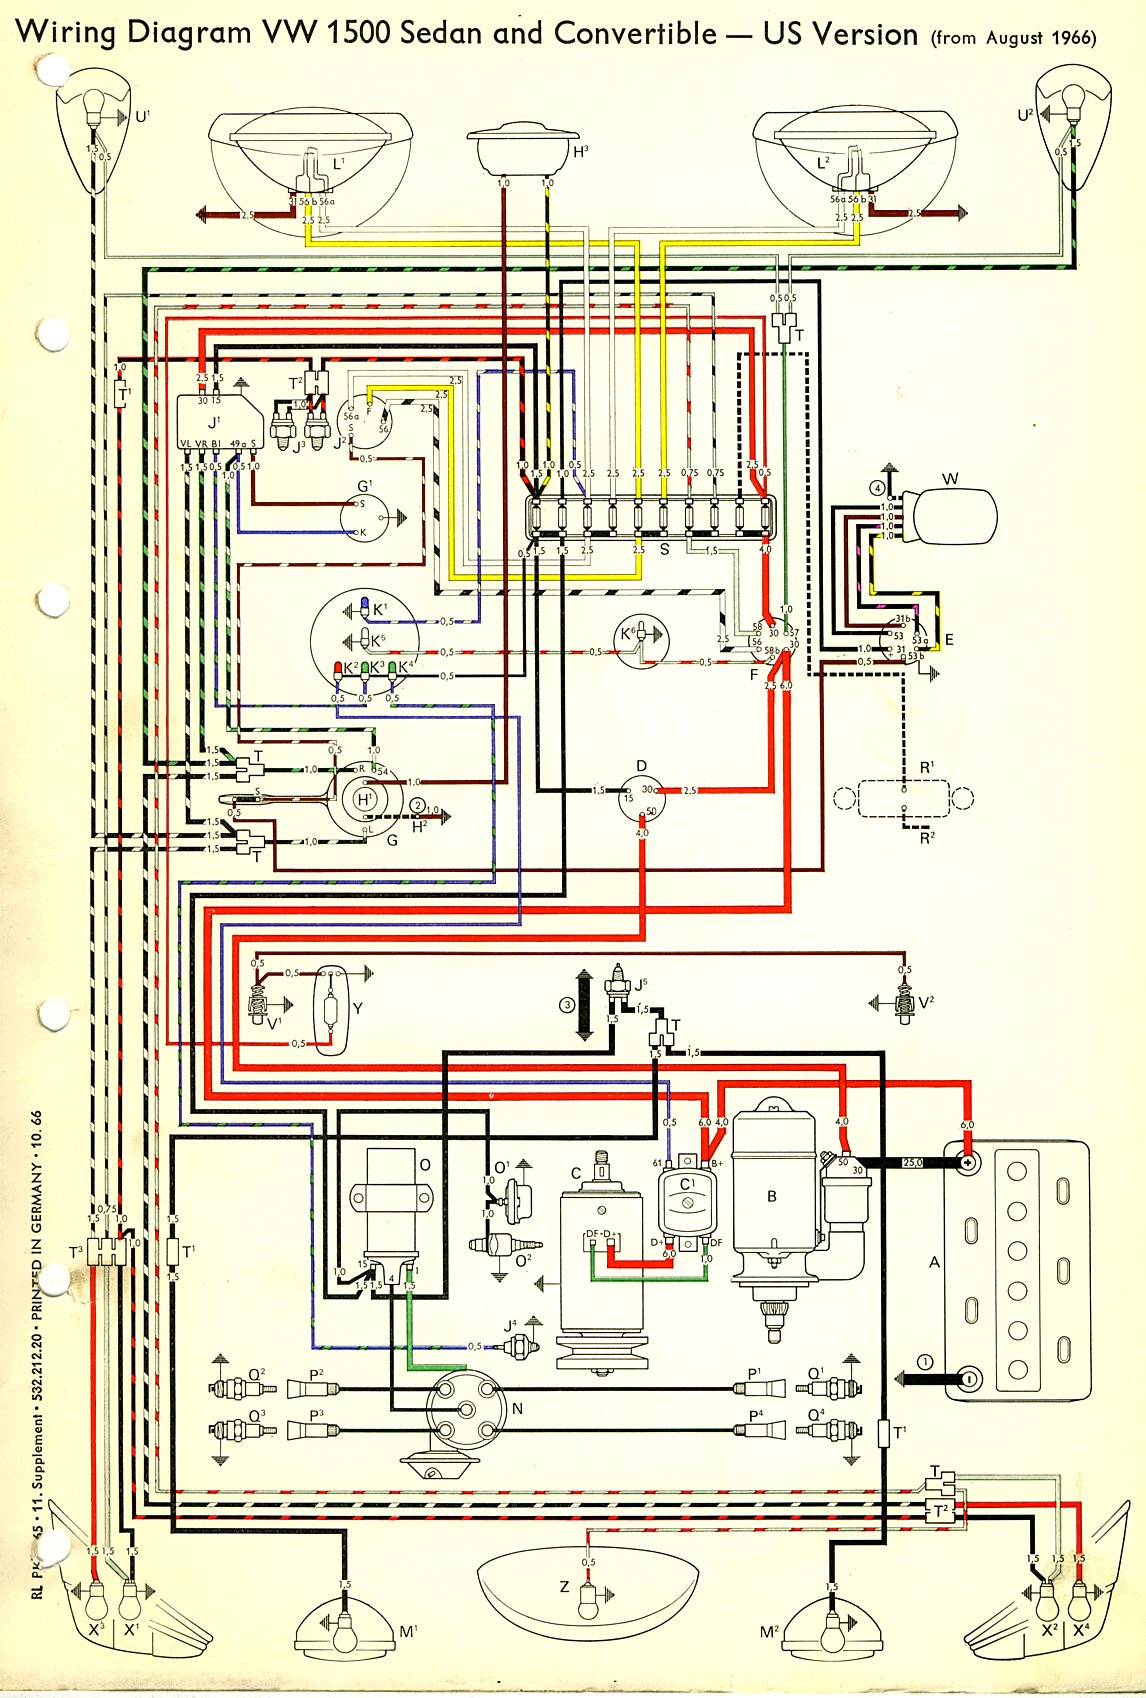 Bplymouth Bbelvedere Bgtx Bsatellite Broad Brunner Bschematic as well From Augusti Extra Tillbehor further Type V Usa furthermore Hqdefault moreover Ghia Fuses Dpi. on 1970 vw wiring diagram